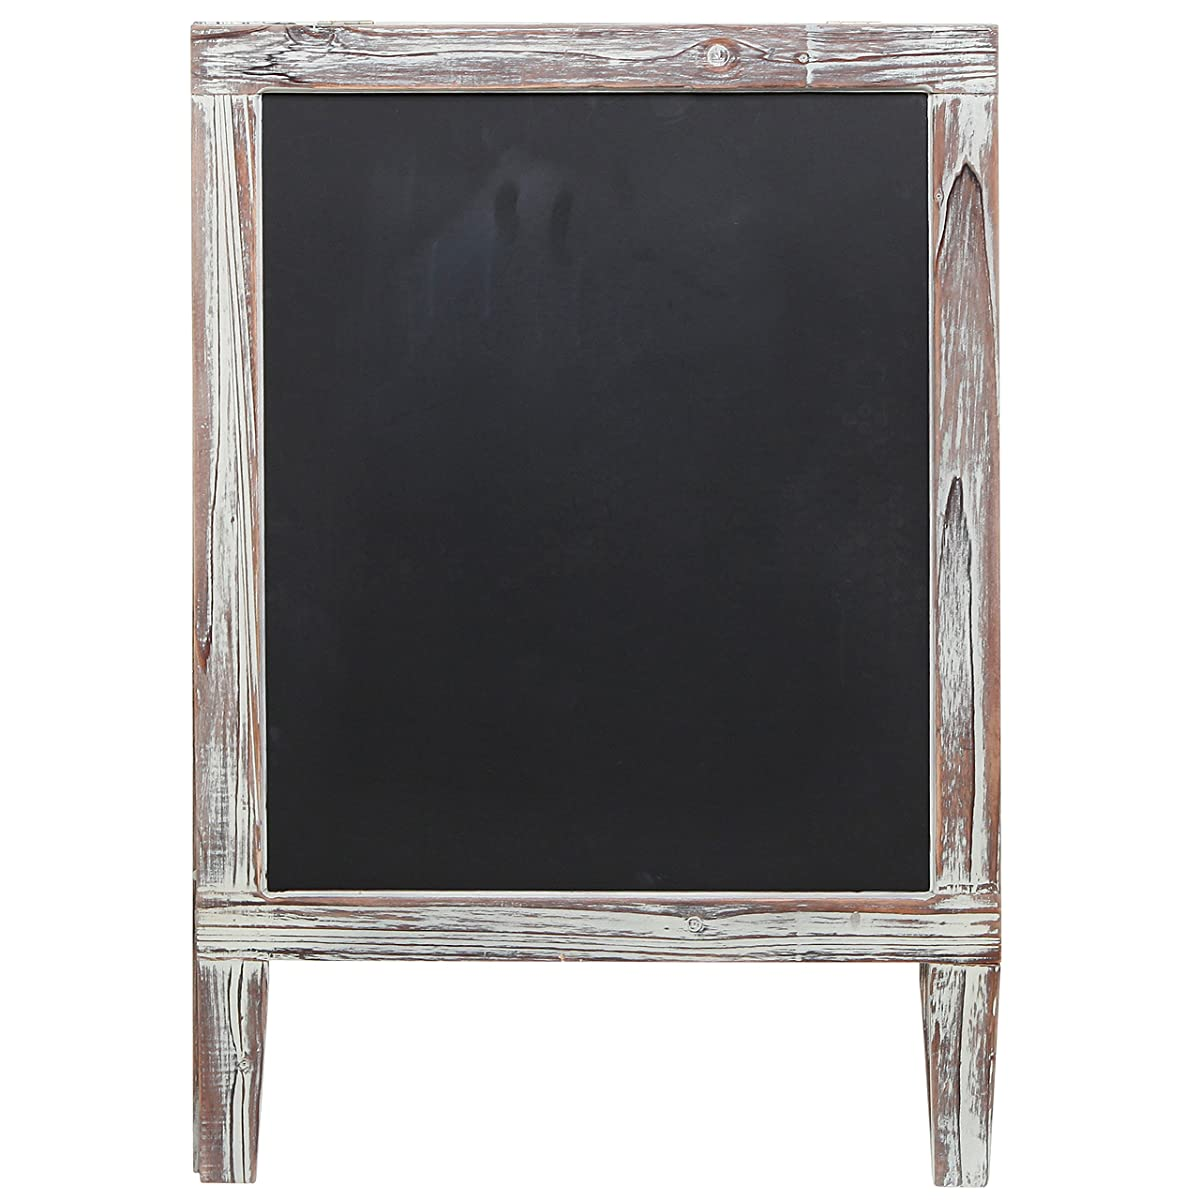 Rustic Style Chalkboard Sign